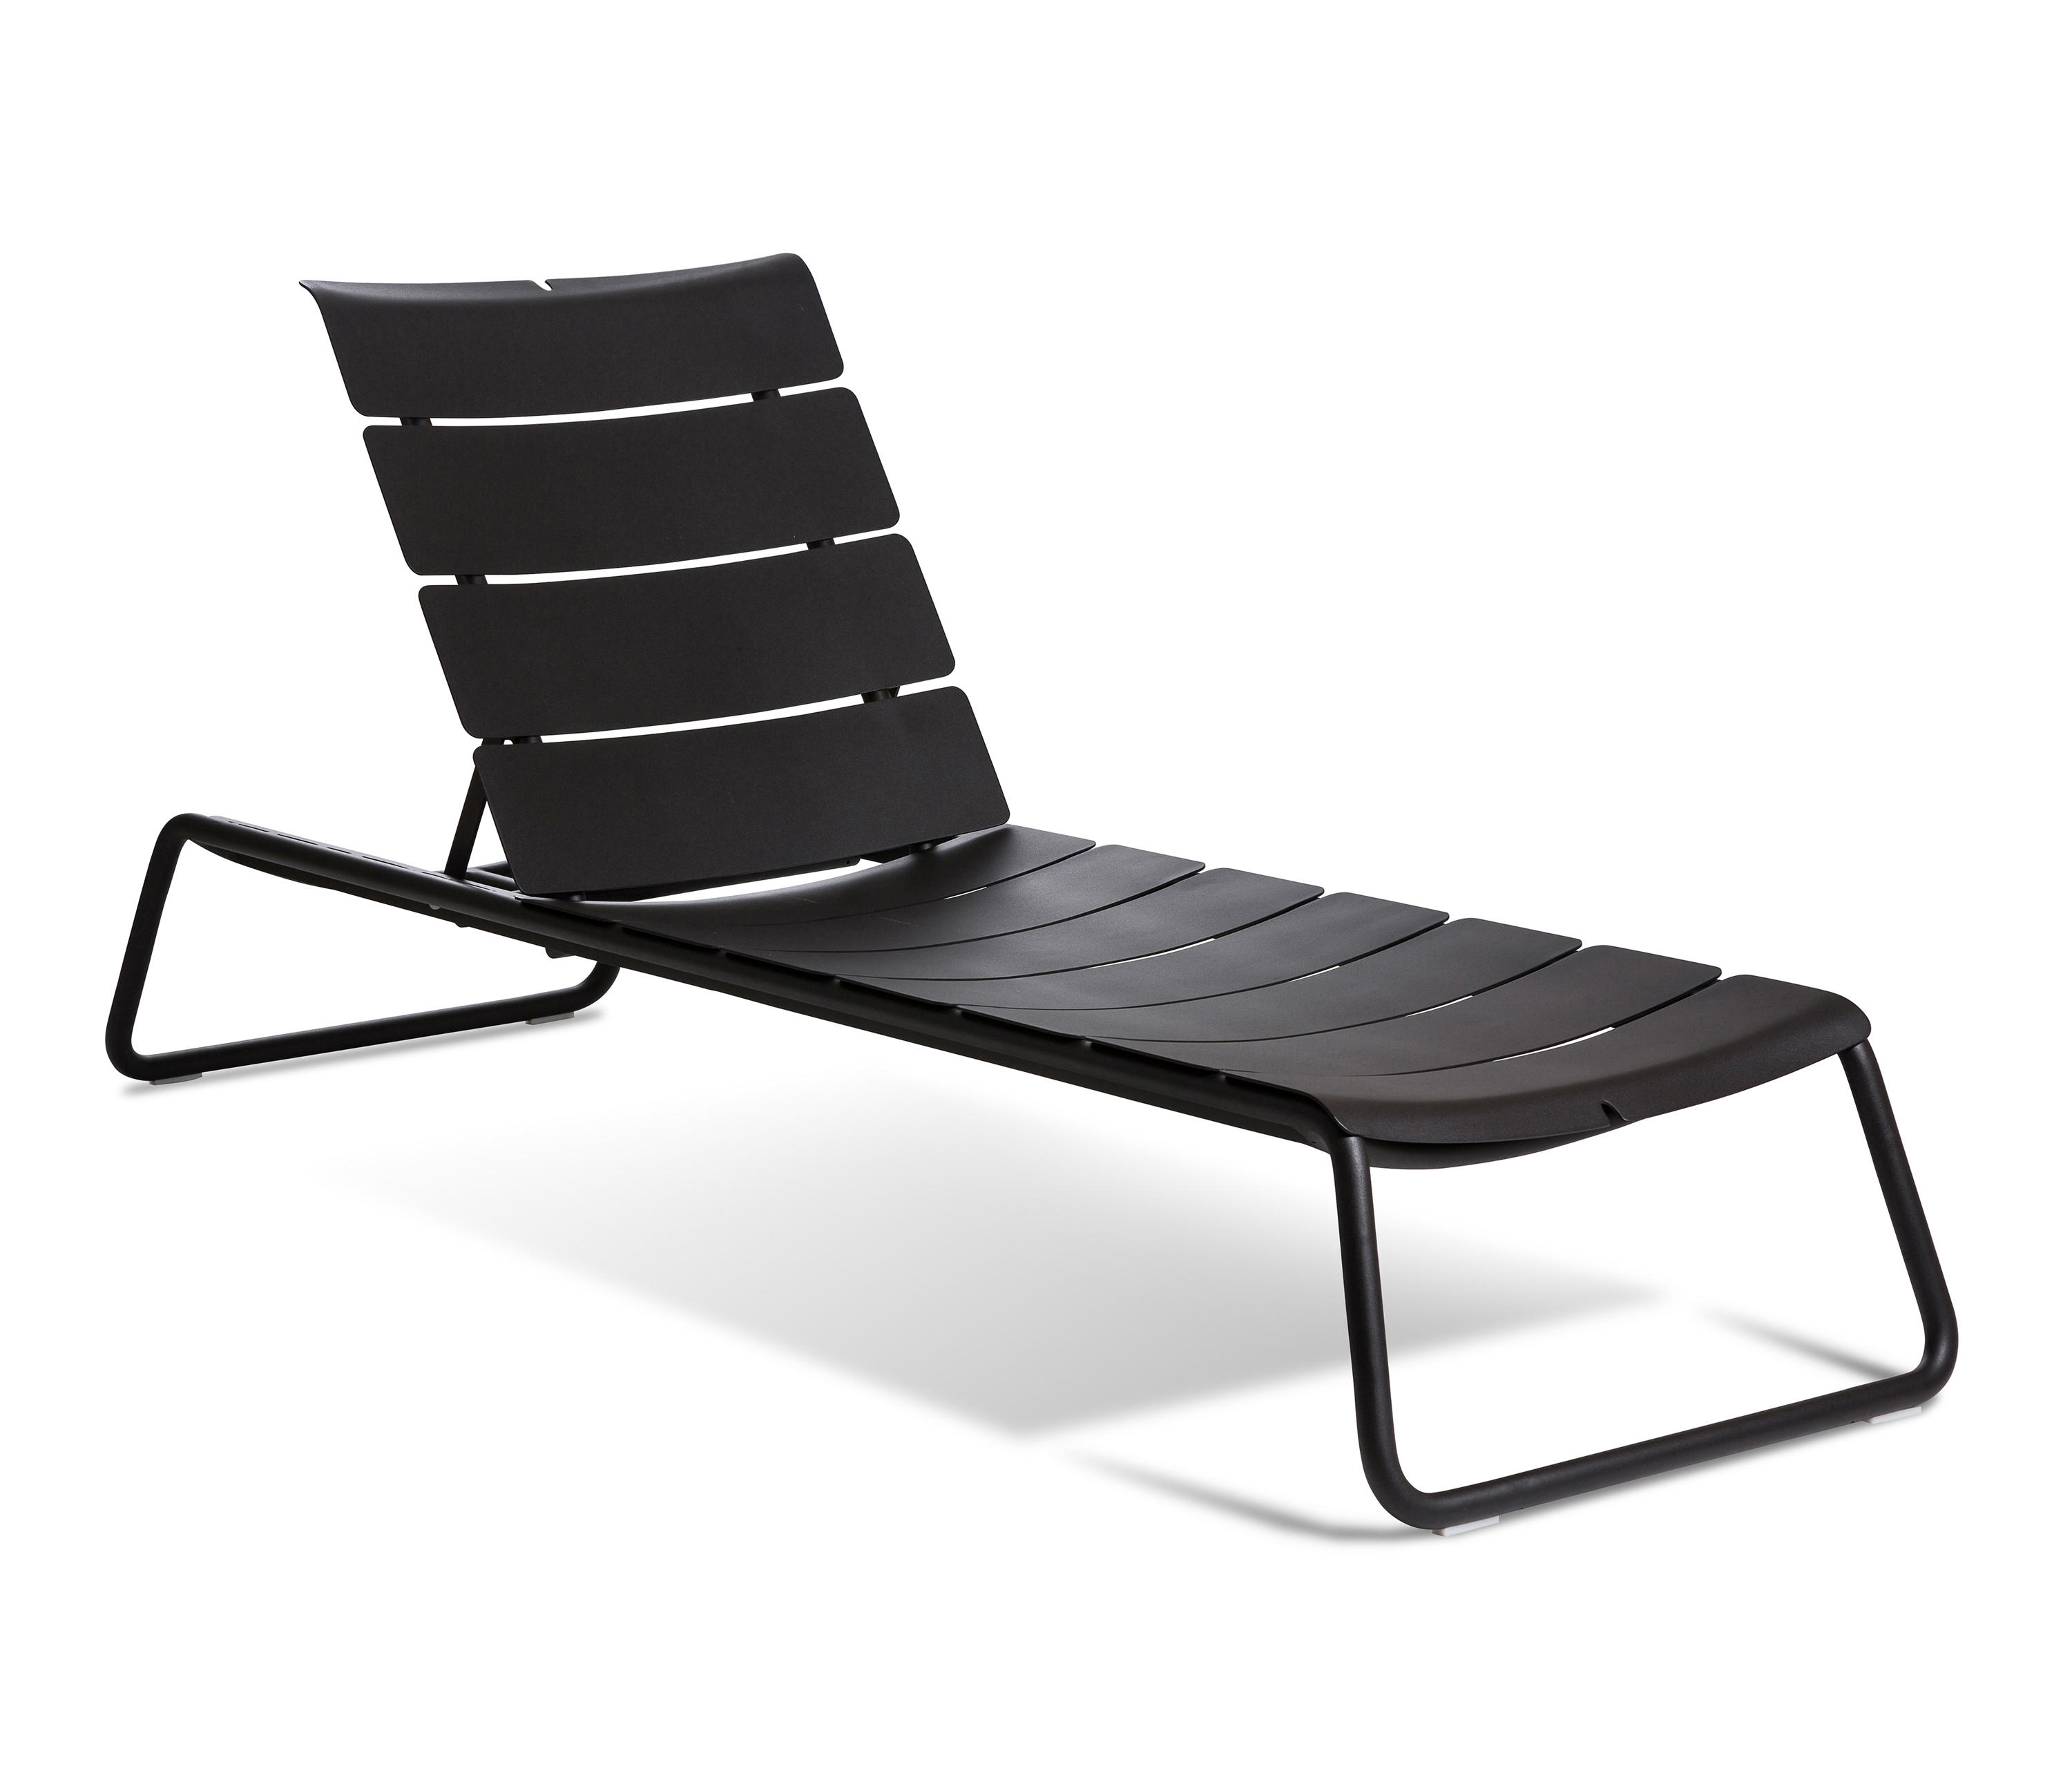 Enjoyable Corail Sun Lounger Designer Furniture Architonic Gmtry Best Dining Table And Chair Ideas Images Gmtryco